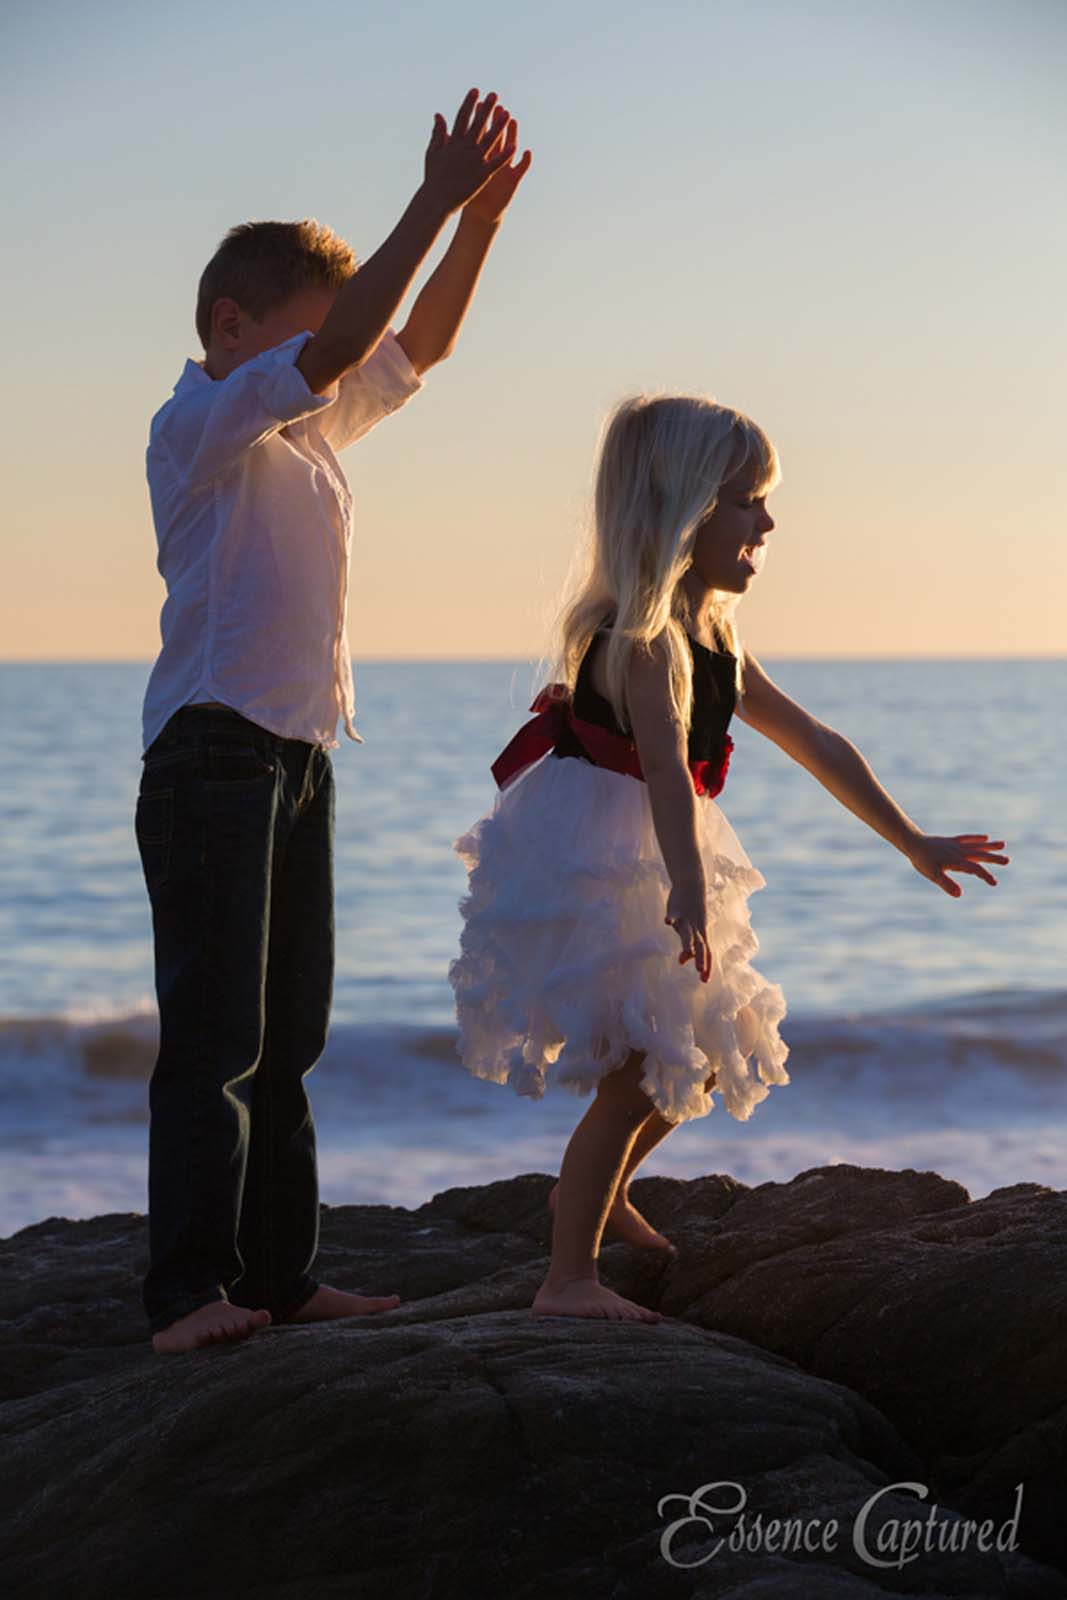 two children playing at beach jumping on rocks boy girl blonde dressed up sunset ocean